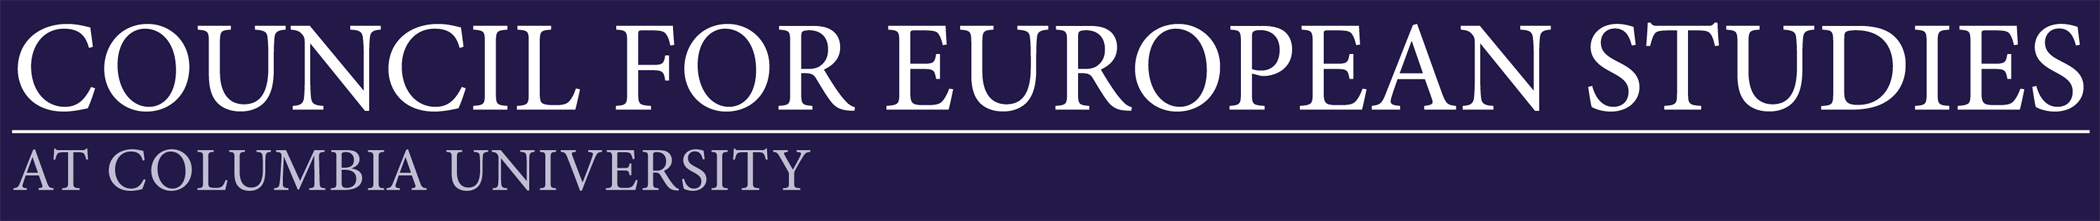 ces pre-dissertation research fellowships Funding opportunities for graduate research in europe  harriman-ces pre-dissertation research fellowship in central and east european studies- includes a $4,000 .